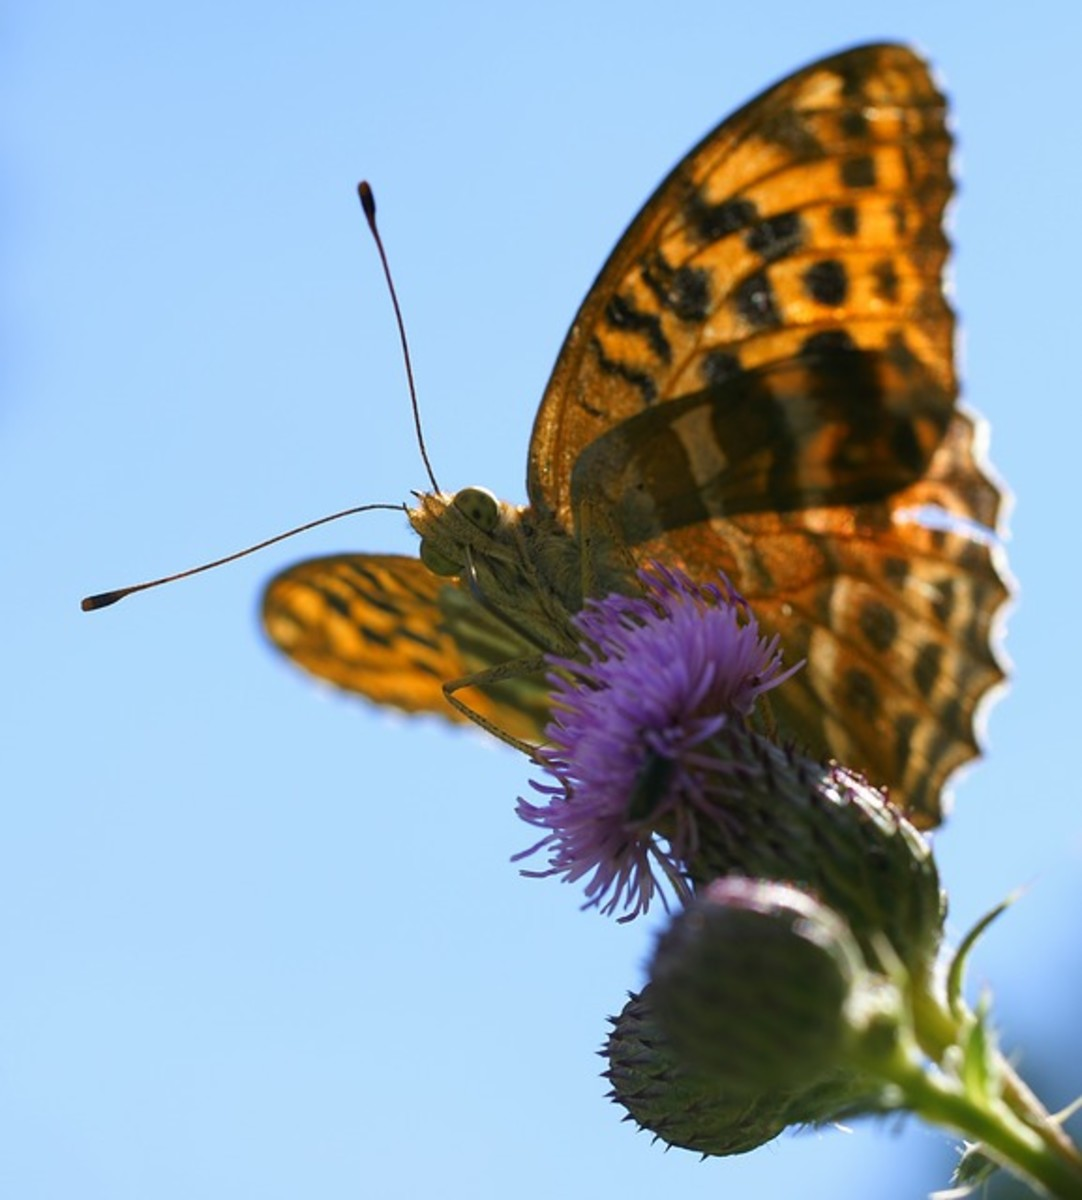 Orange Butterfly Looking at Camera - Silver-Washed Fritillary Butterfly (Argynnis paphia) 'My, What big eyes you have!'